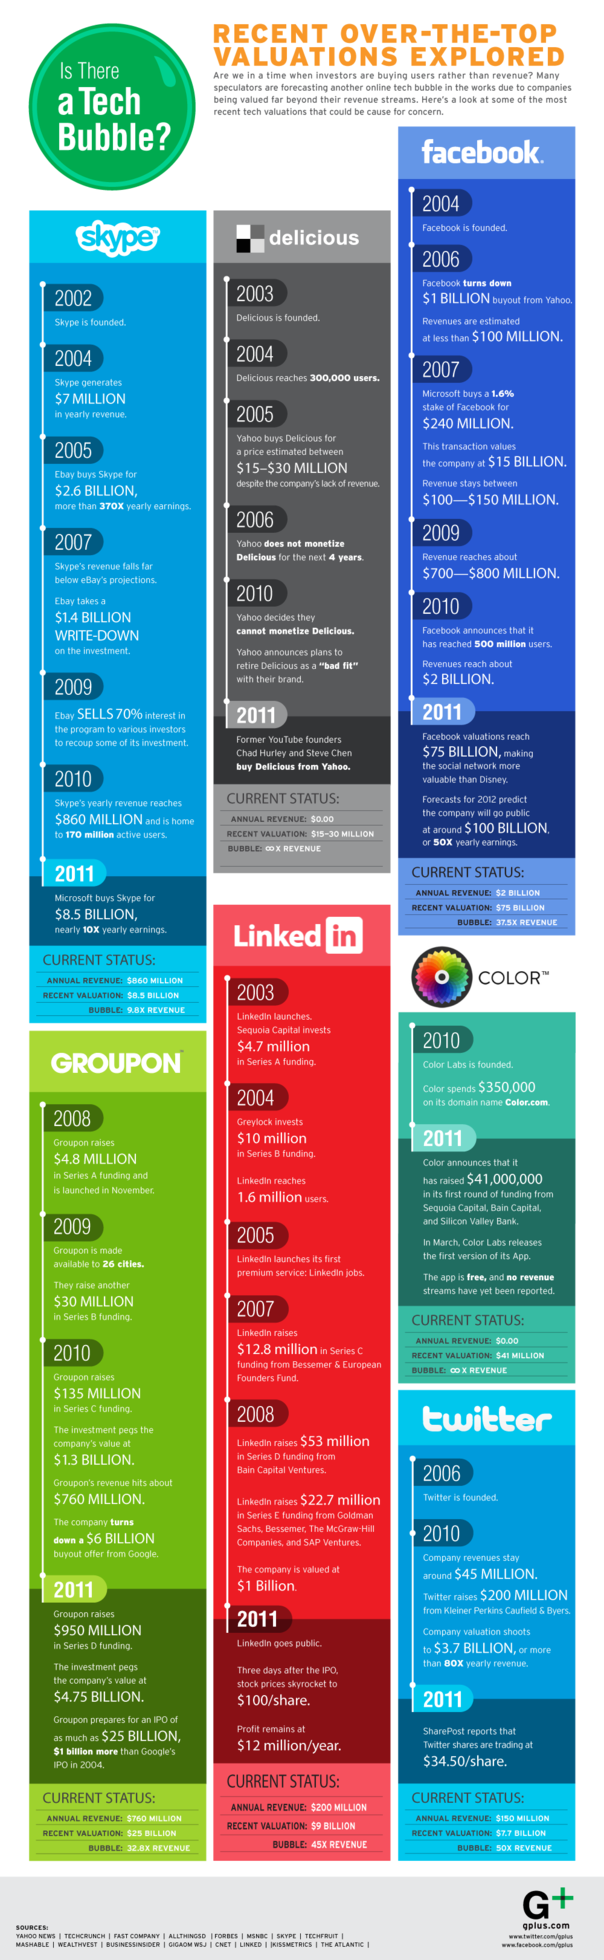 GLG-TECHBUBBLE_Infographic.png